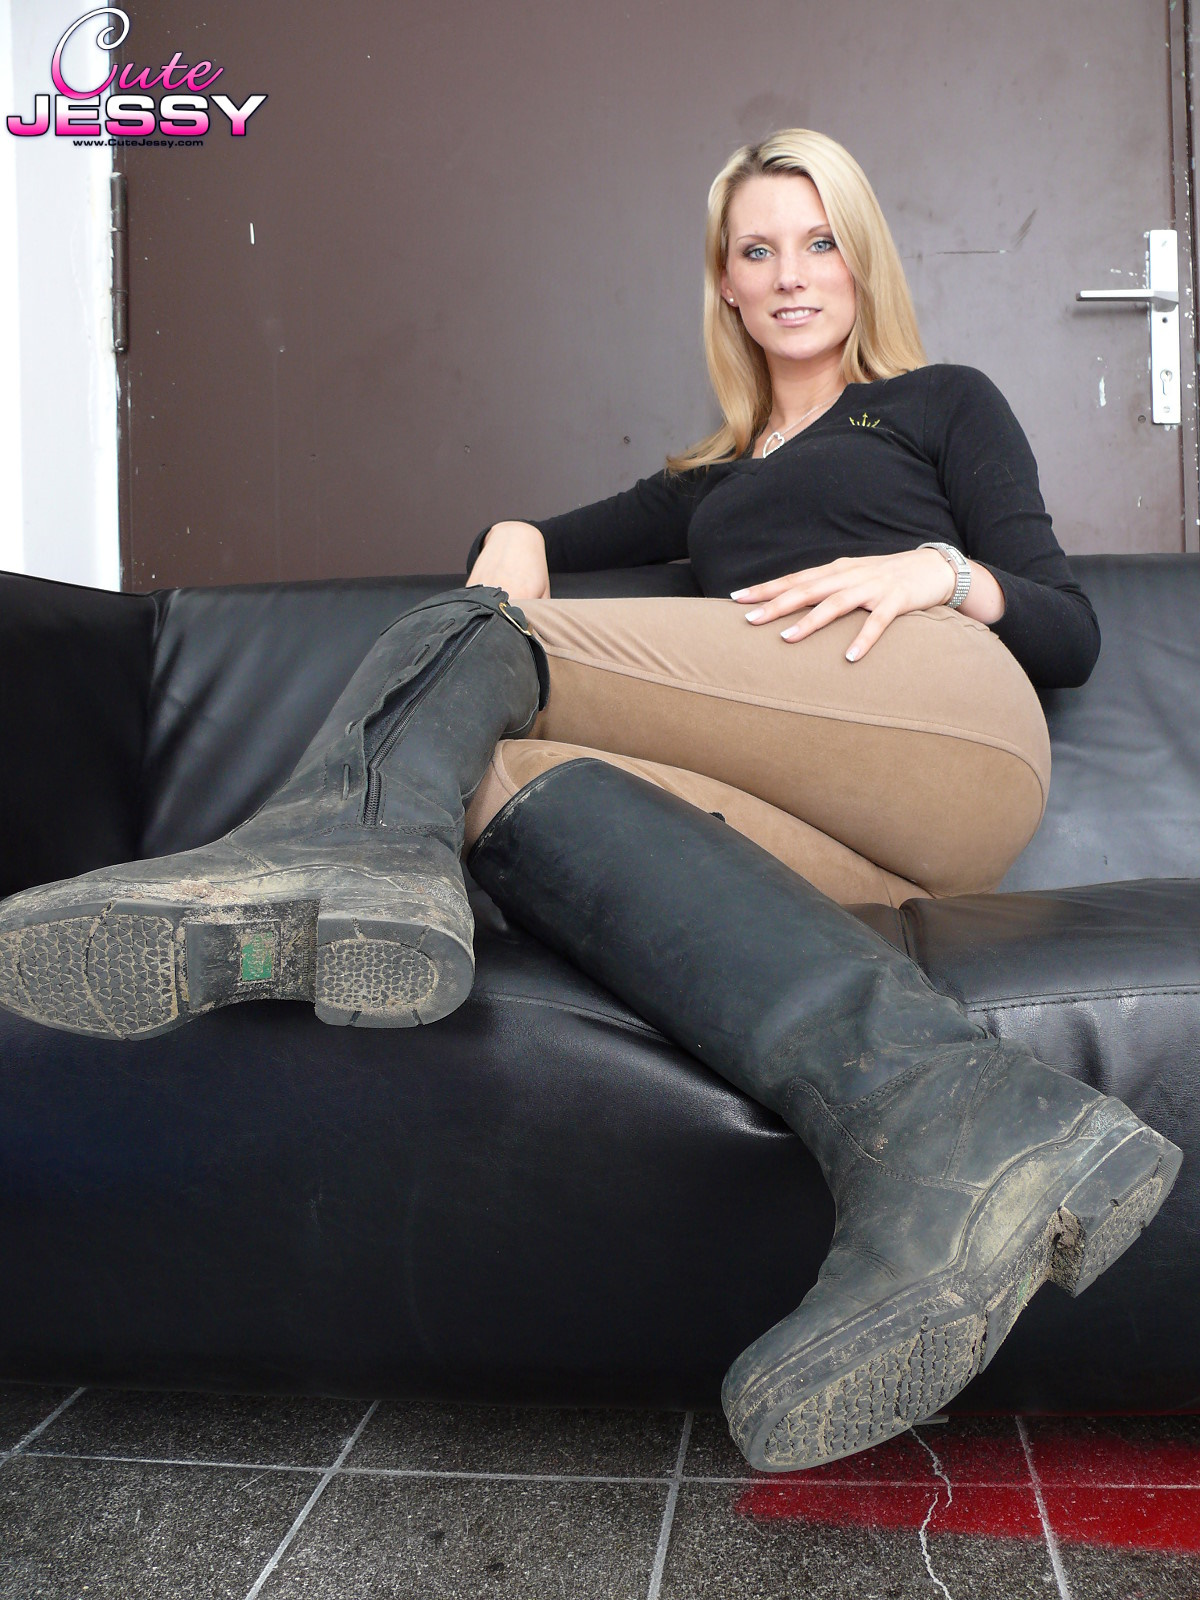 Sexy video dirty